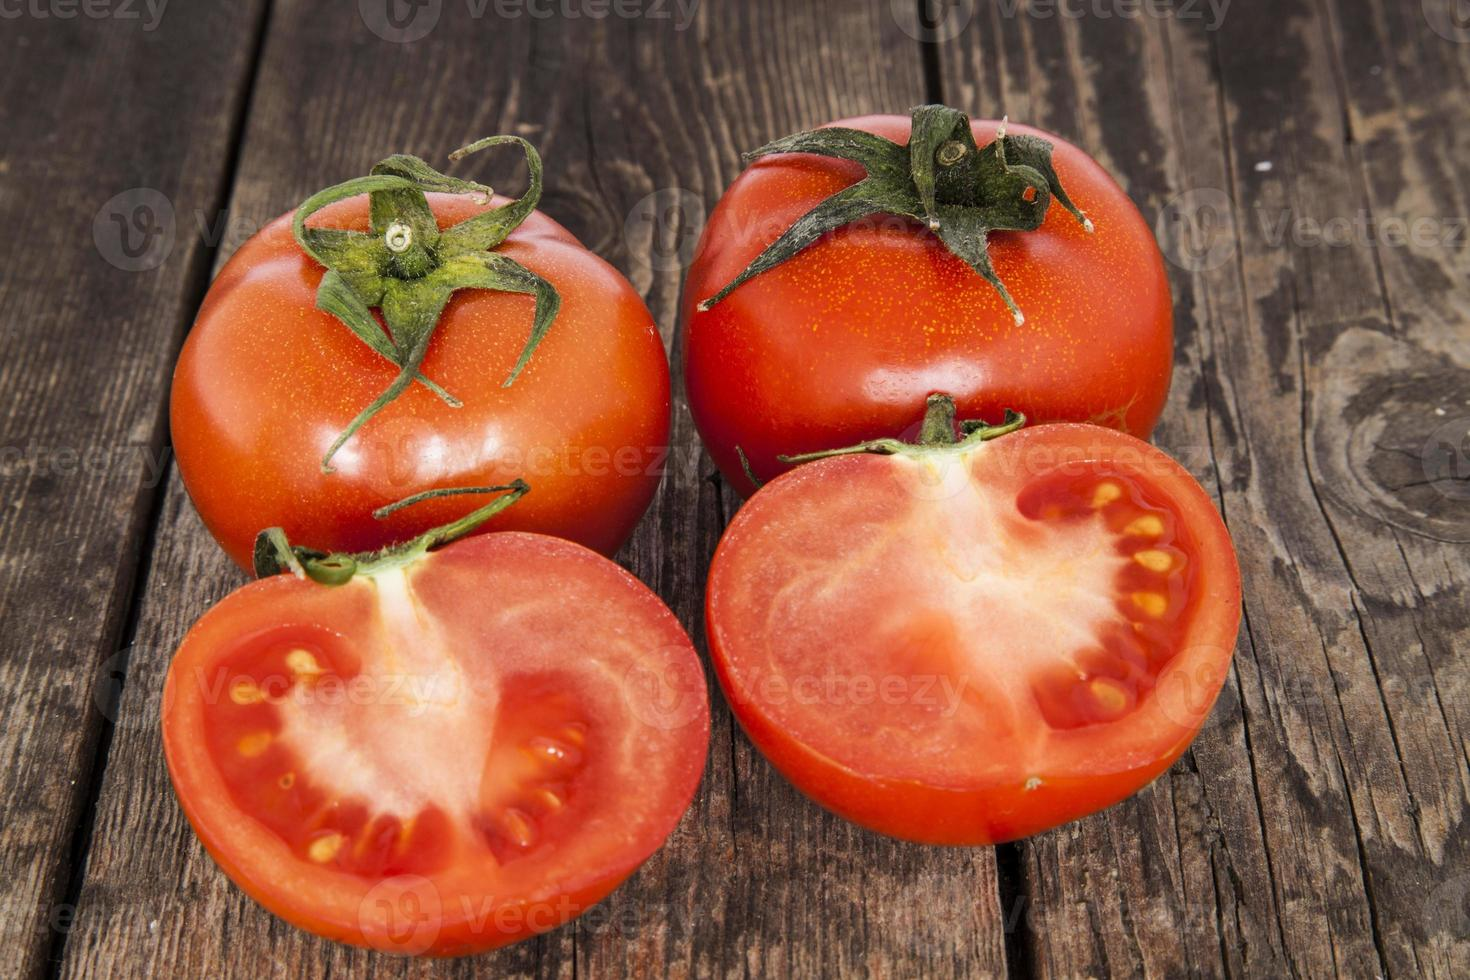 Tomatoes on a wooden table photo